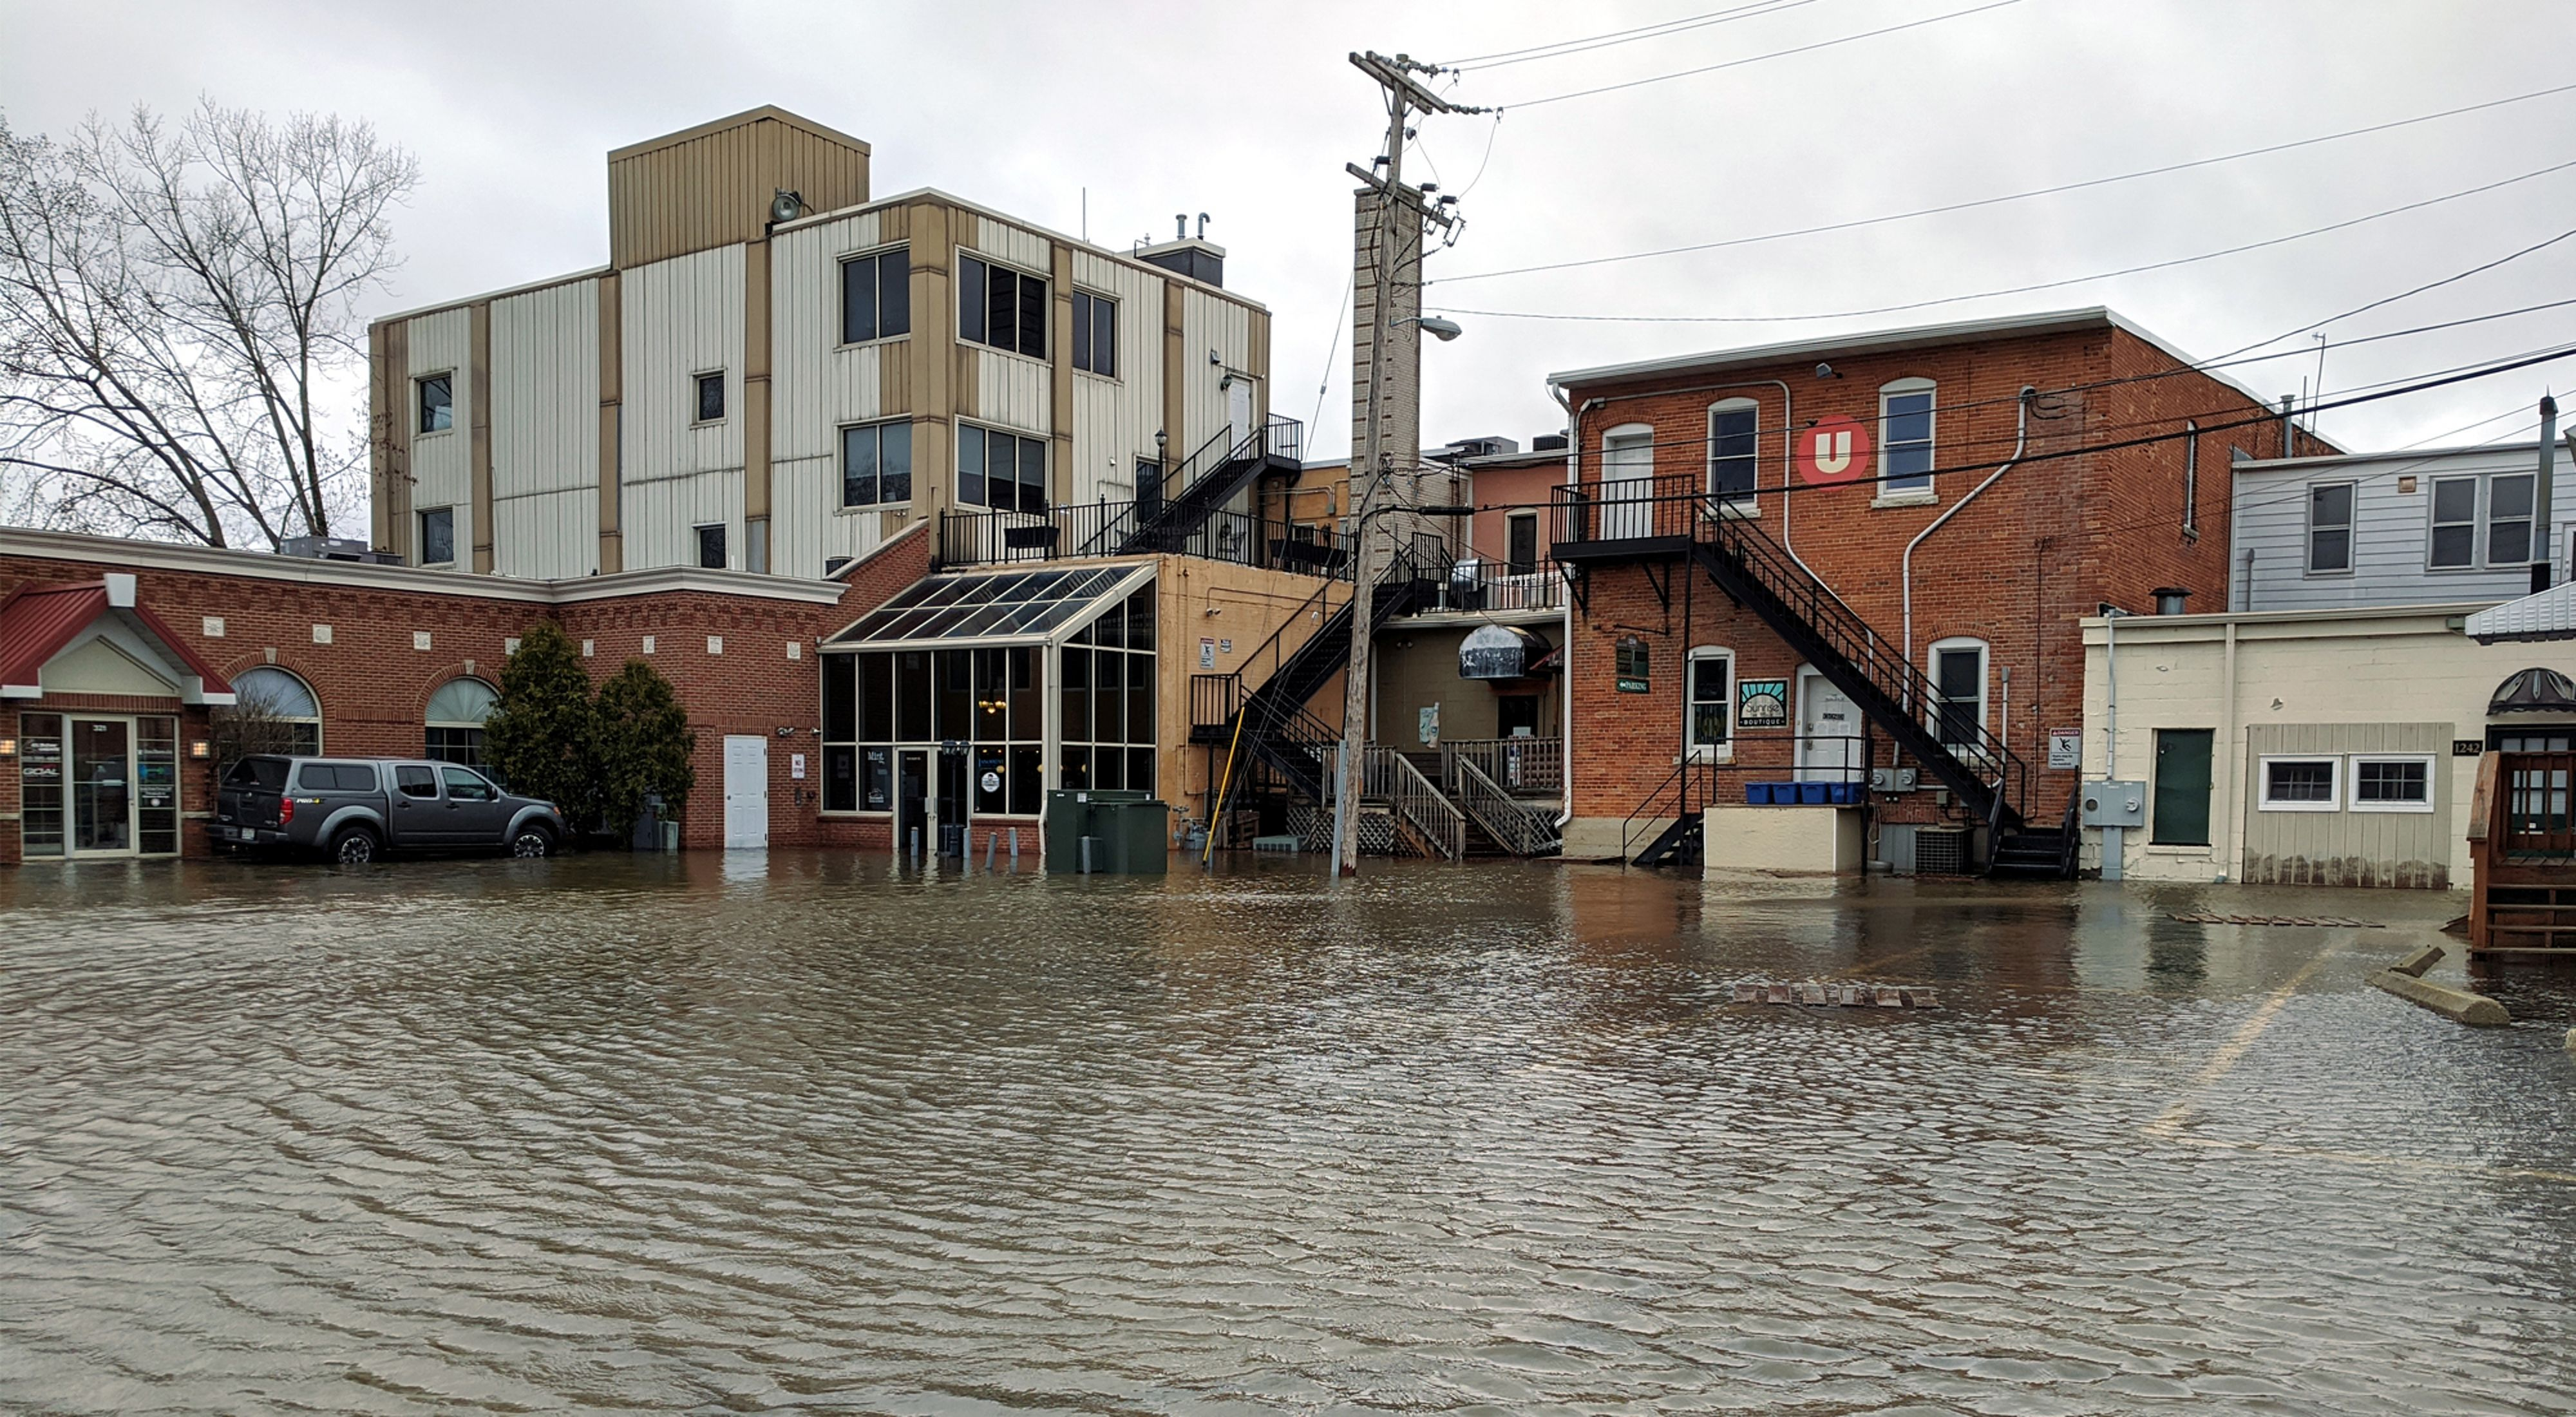 Several buildings in Green Bay, Wisconsin with floodwaters coming up to the entrances.